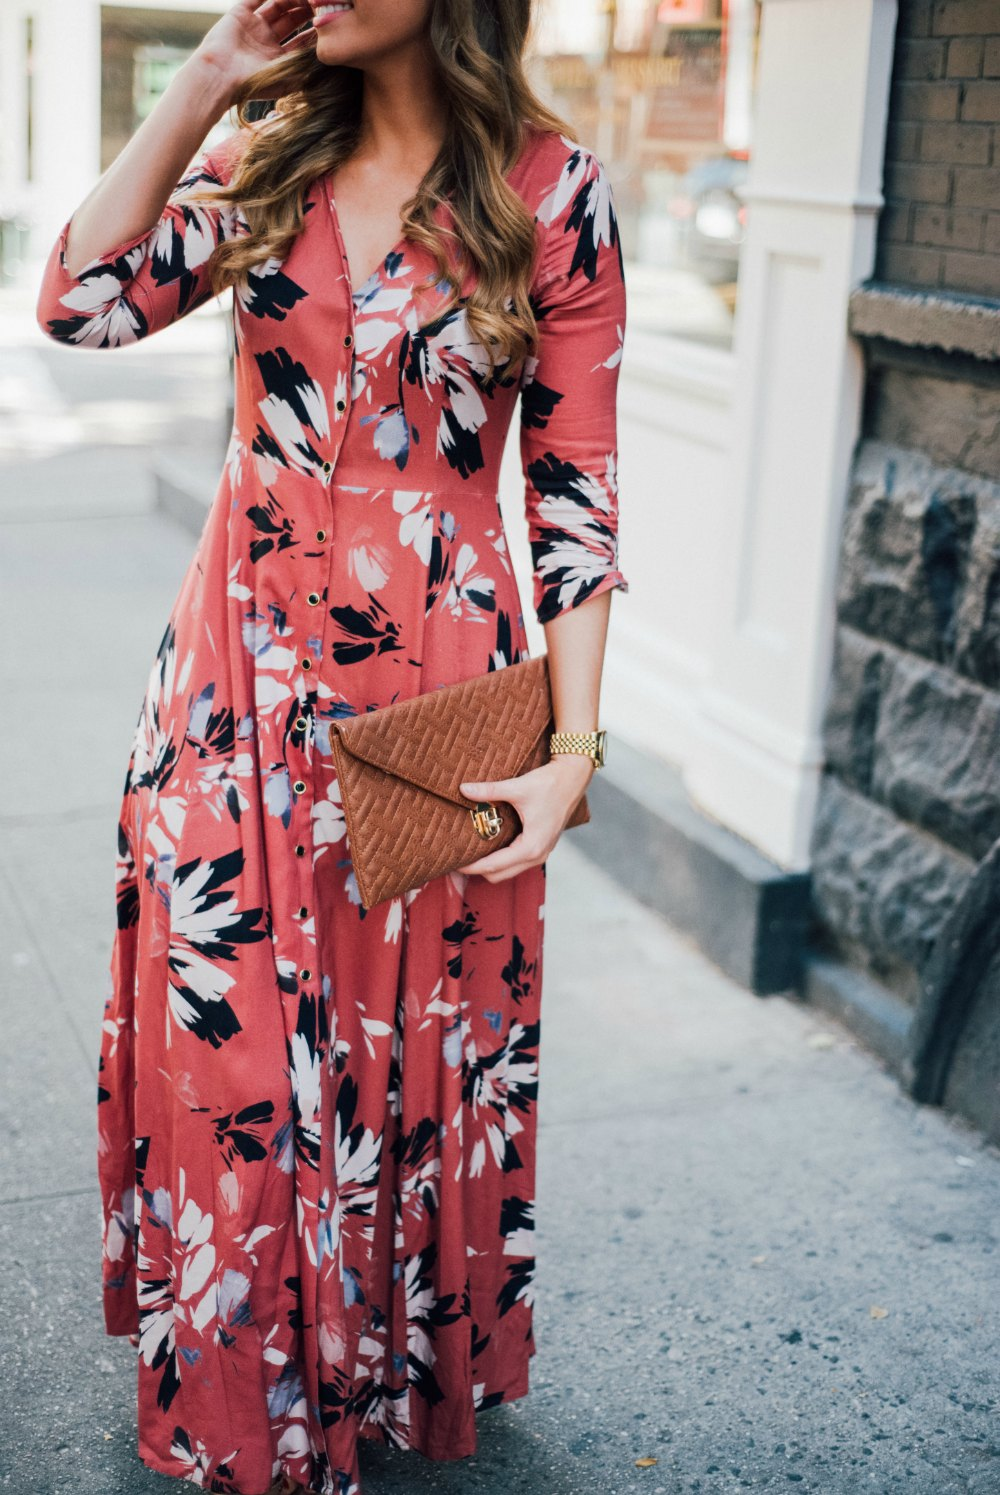 yumi kim maxi dress new york spring outfit soho lauren slade style elixir fashion blog 5 | Summer Floral Maxi Dress in Soho featured by popular US blogger Style Elixir